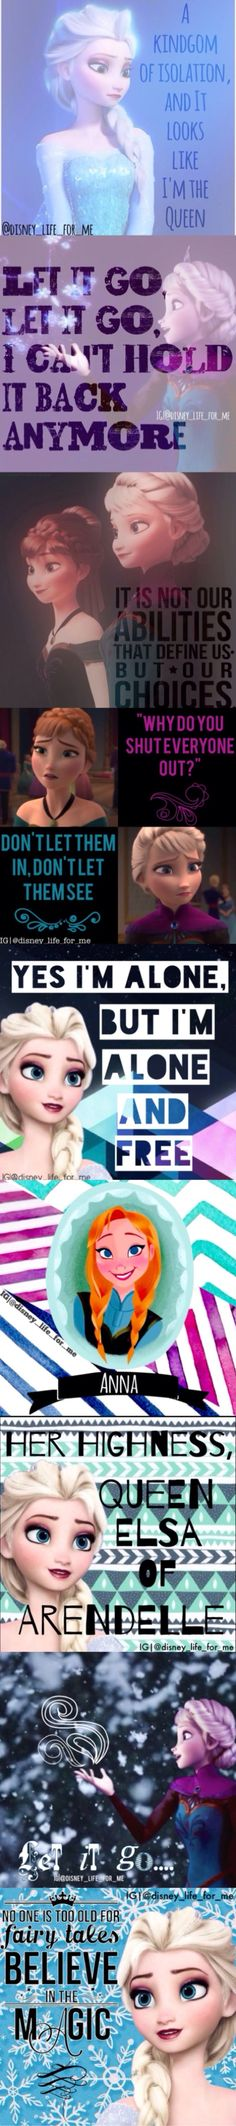 Disney's Frozen Anna and Elsa, quotes, edits by IG|@disney_life_for_me